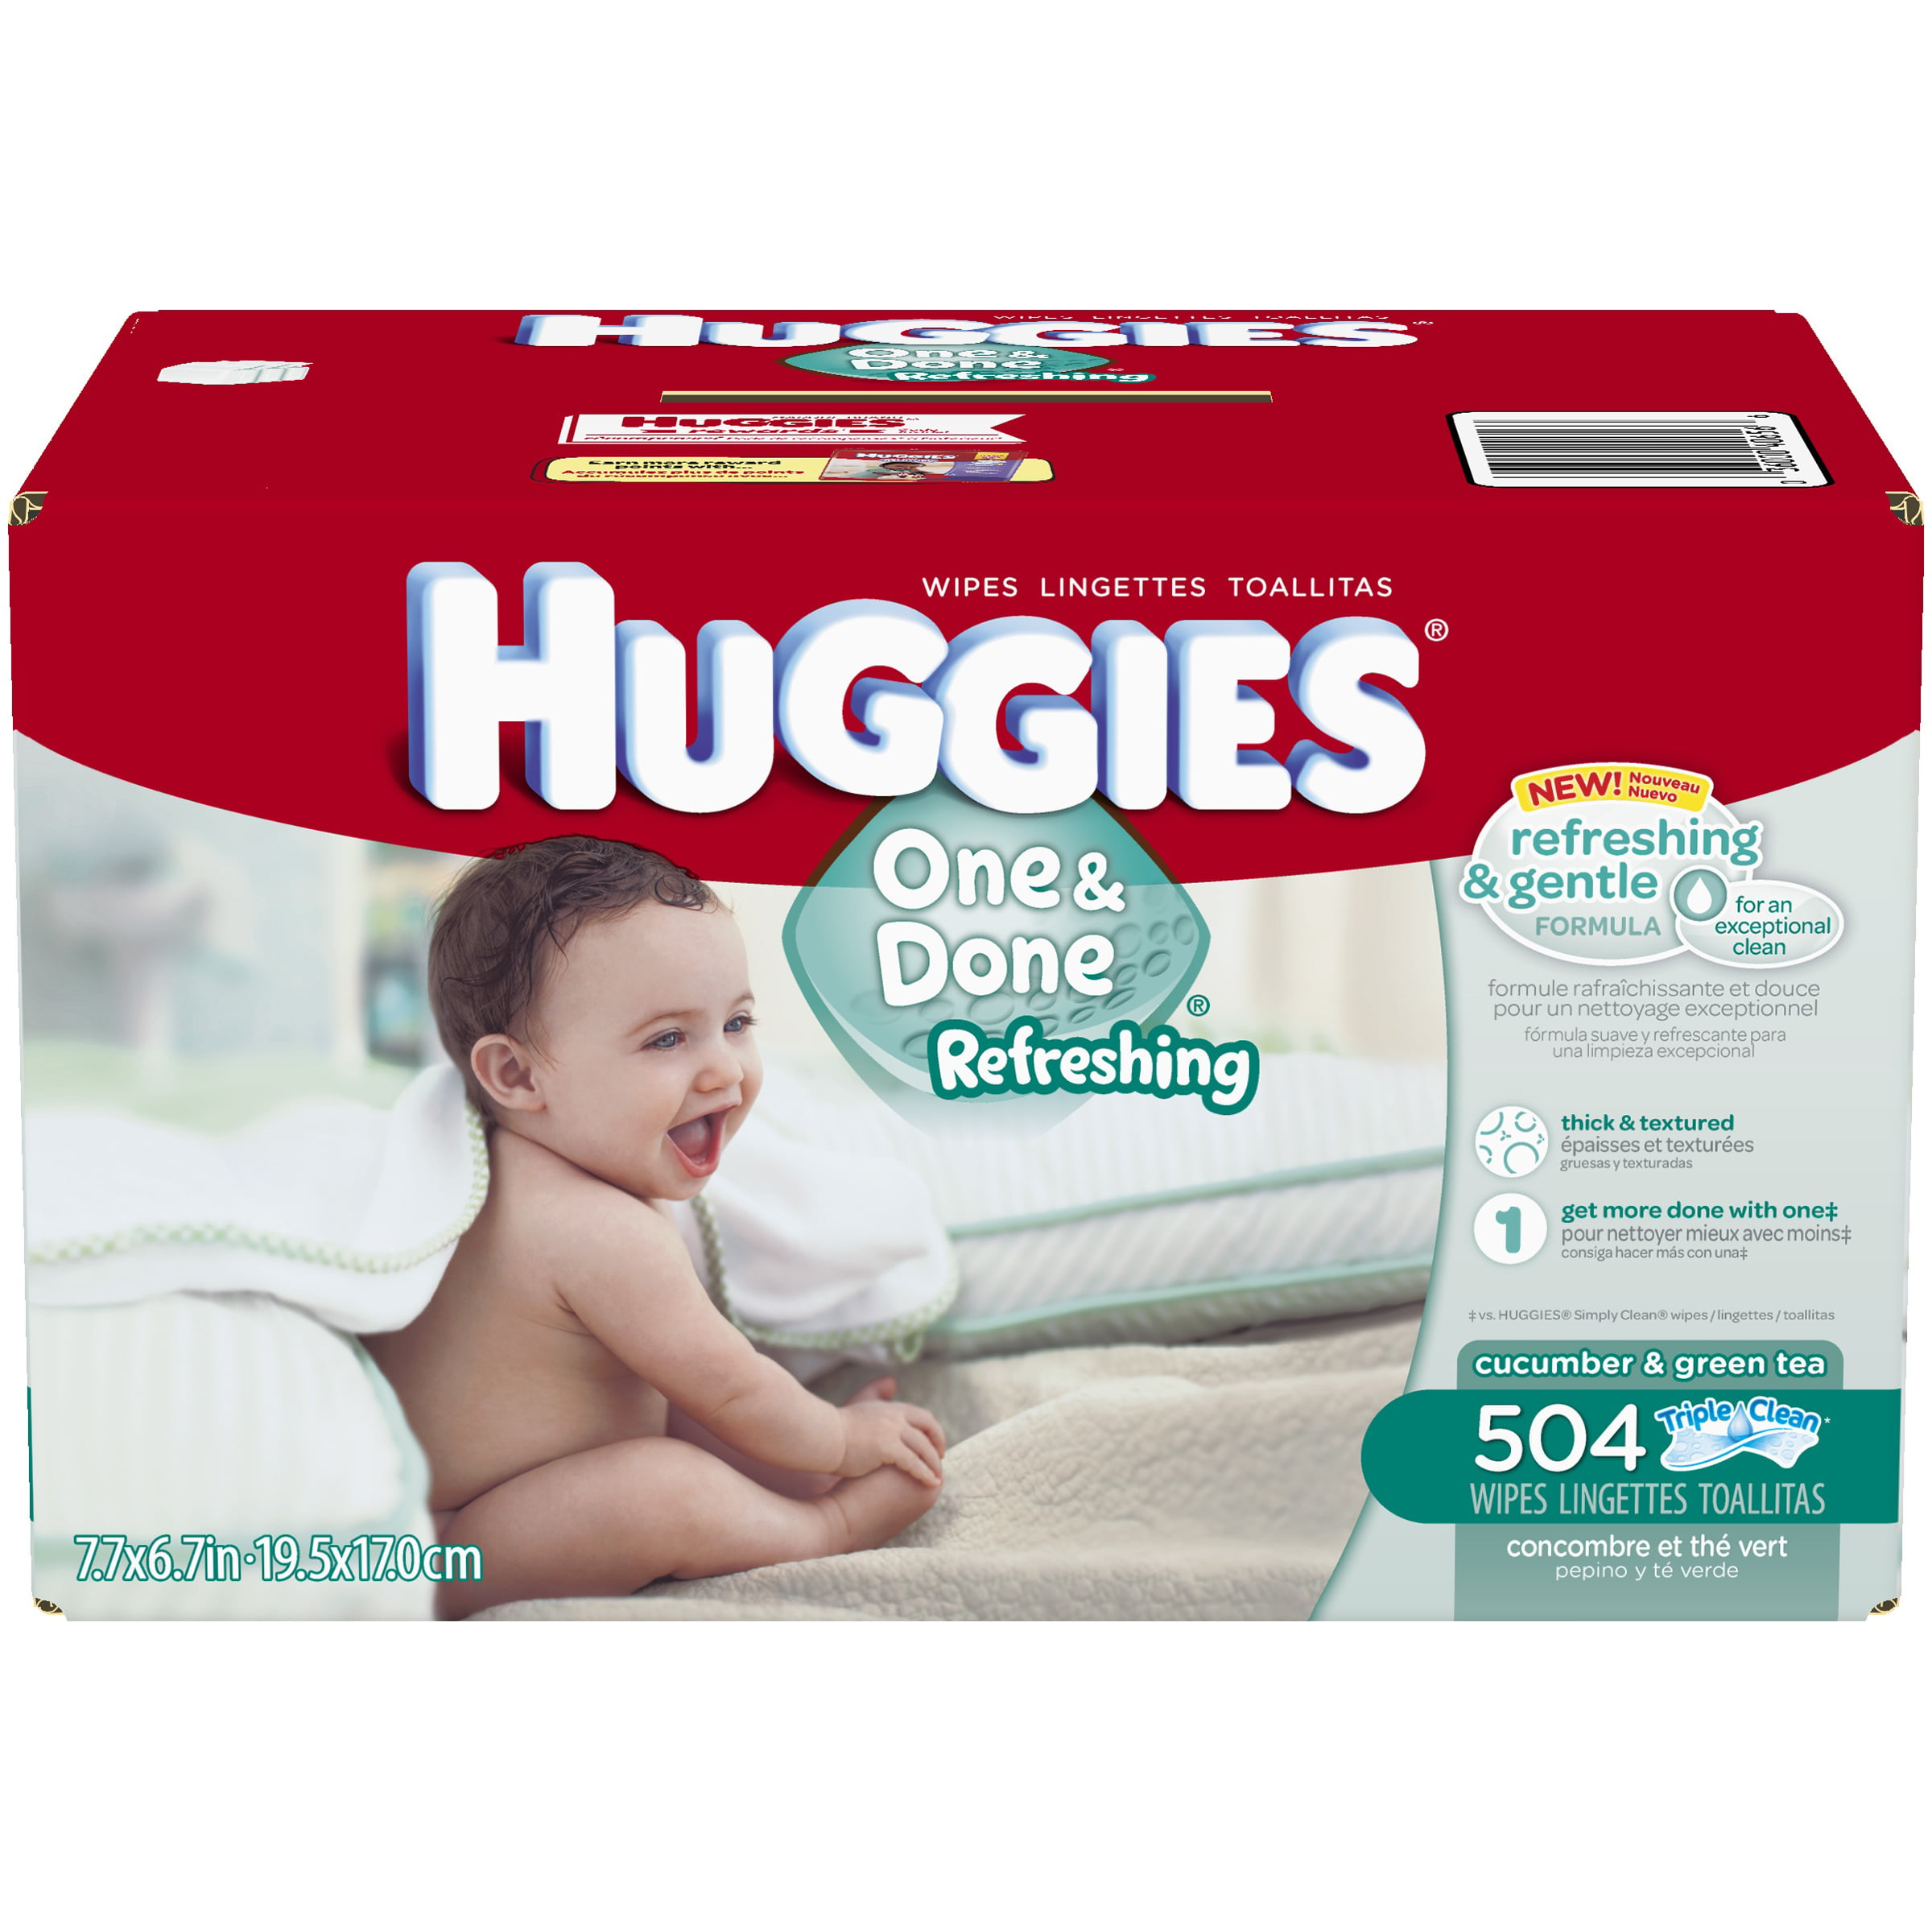 Huggies One & Done Refreshing Baby Wipes Refill, 504 sHeets by HUGGIES